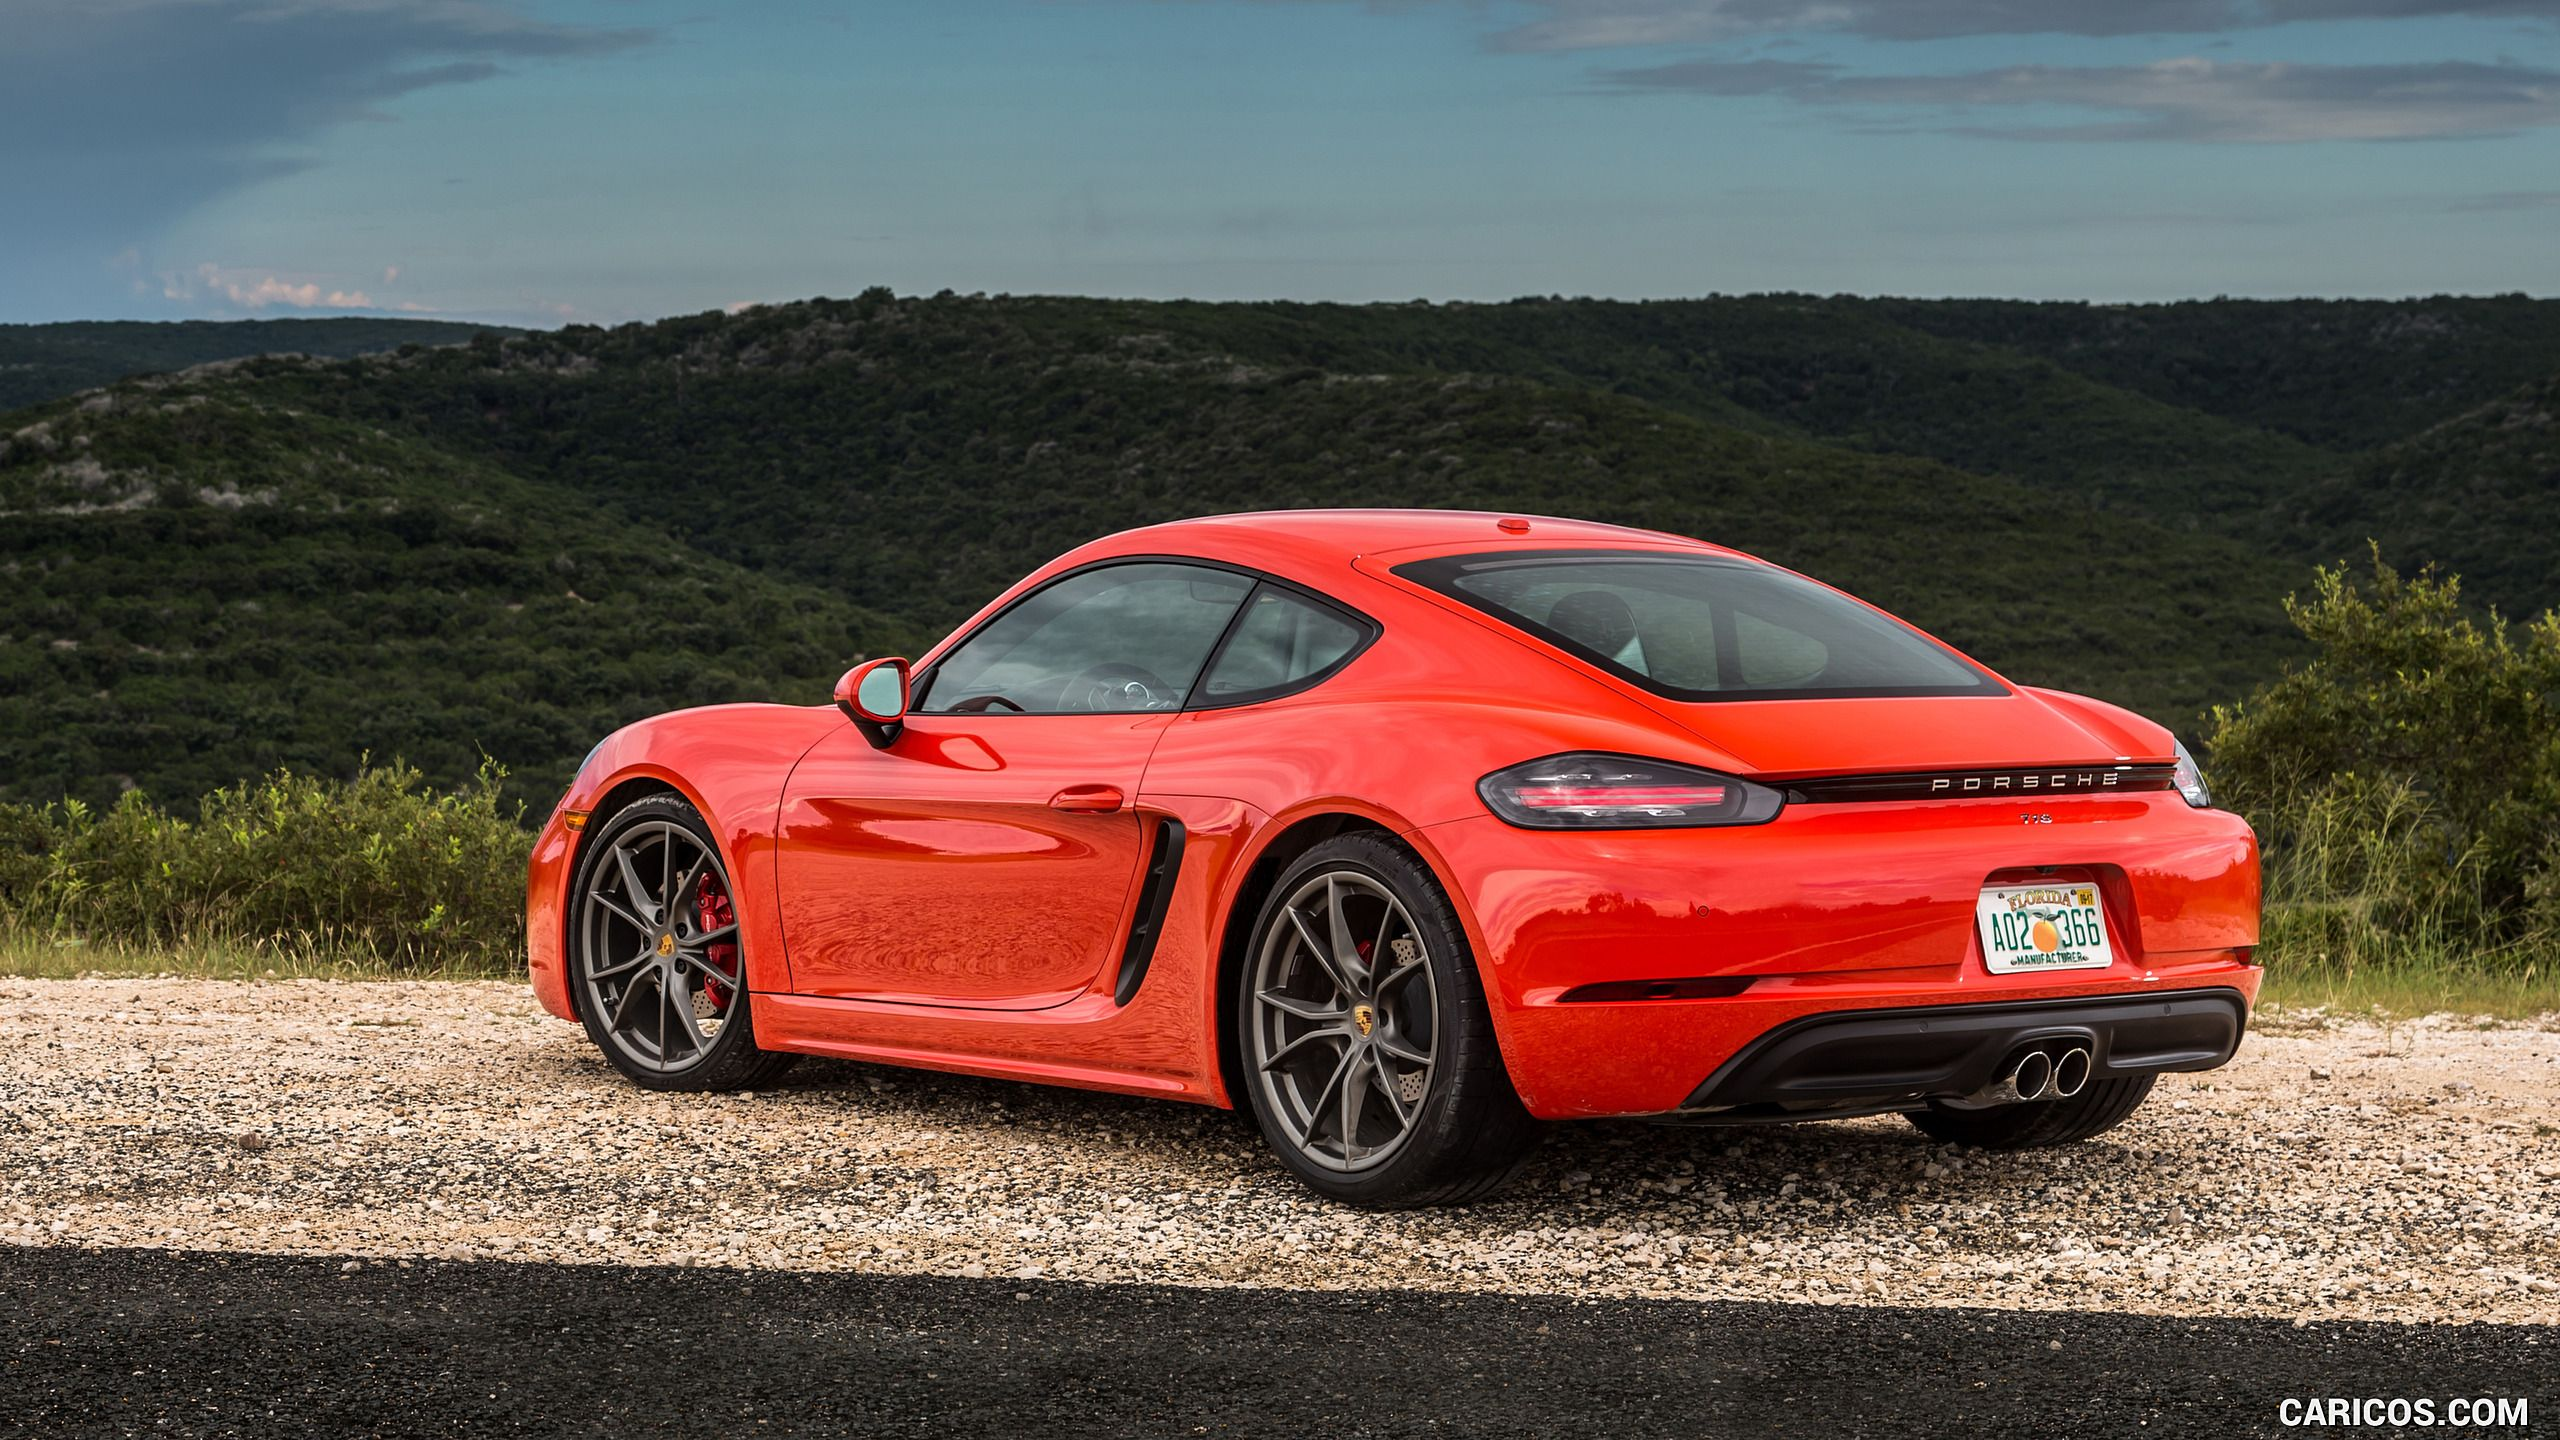 Pin By Brian Mastin On Performance Cars In 2021 Porsche 718 Cayman 718 Cayman Porsche Cayman S